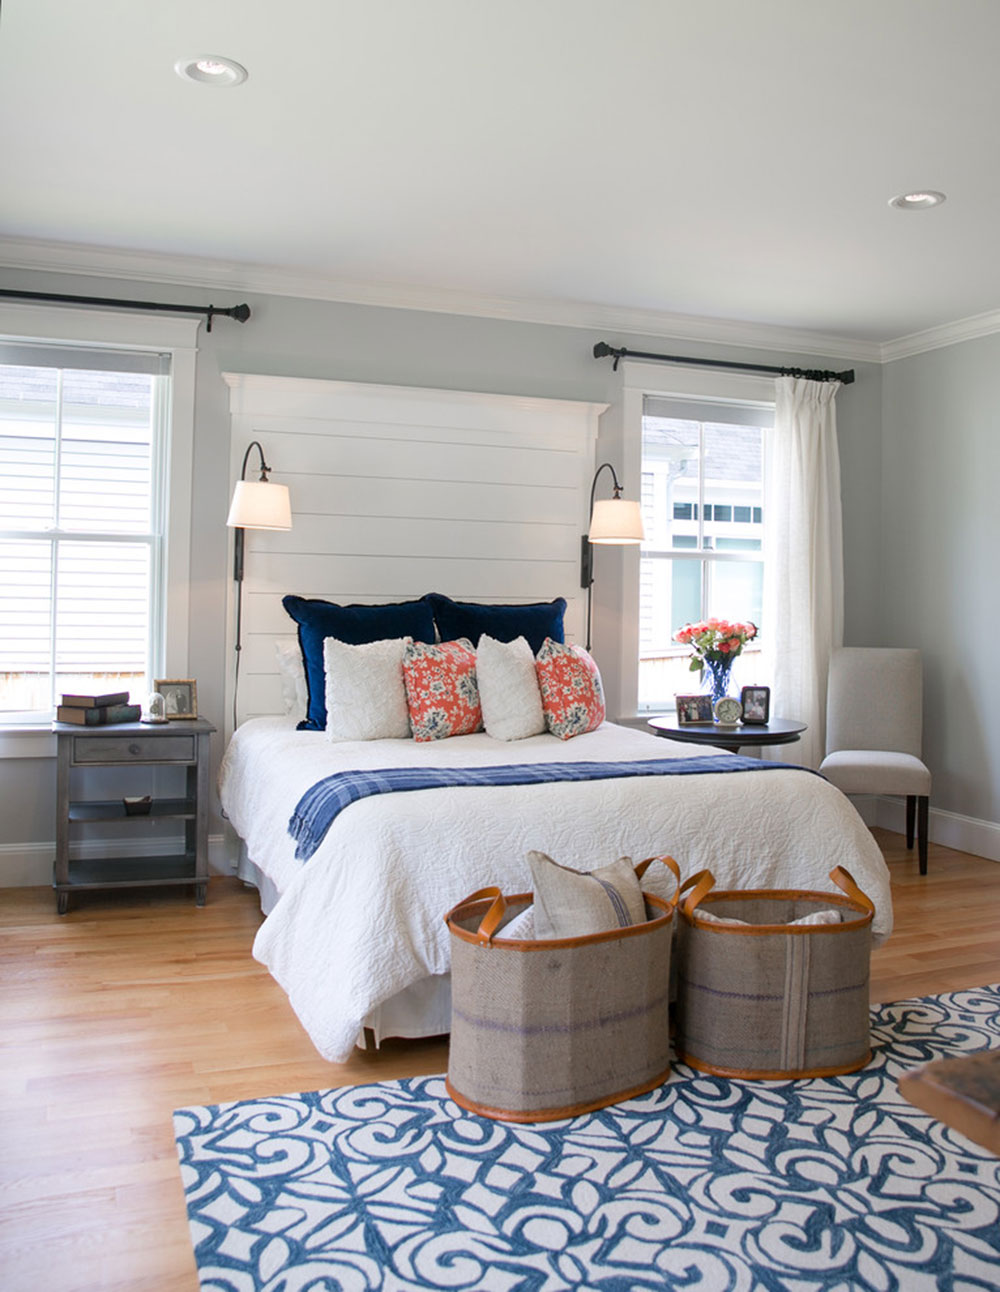 Master Bedroom-Office-Suite-by-The-Good-Home-Interiors-n-Design How to tidy up your bedroom and make it look great